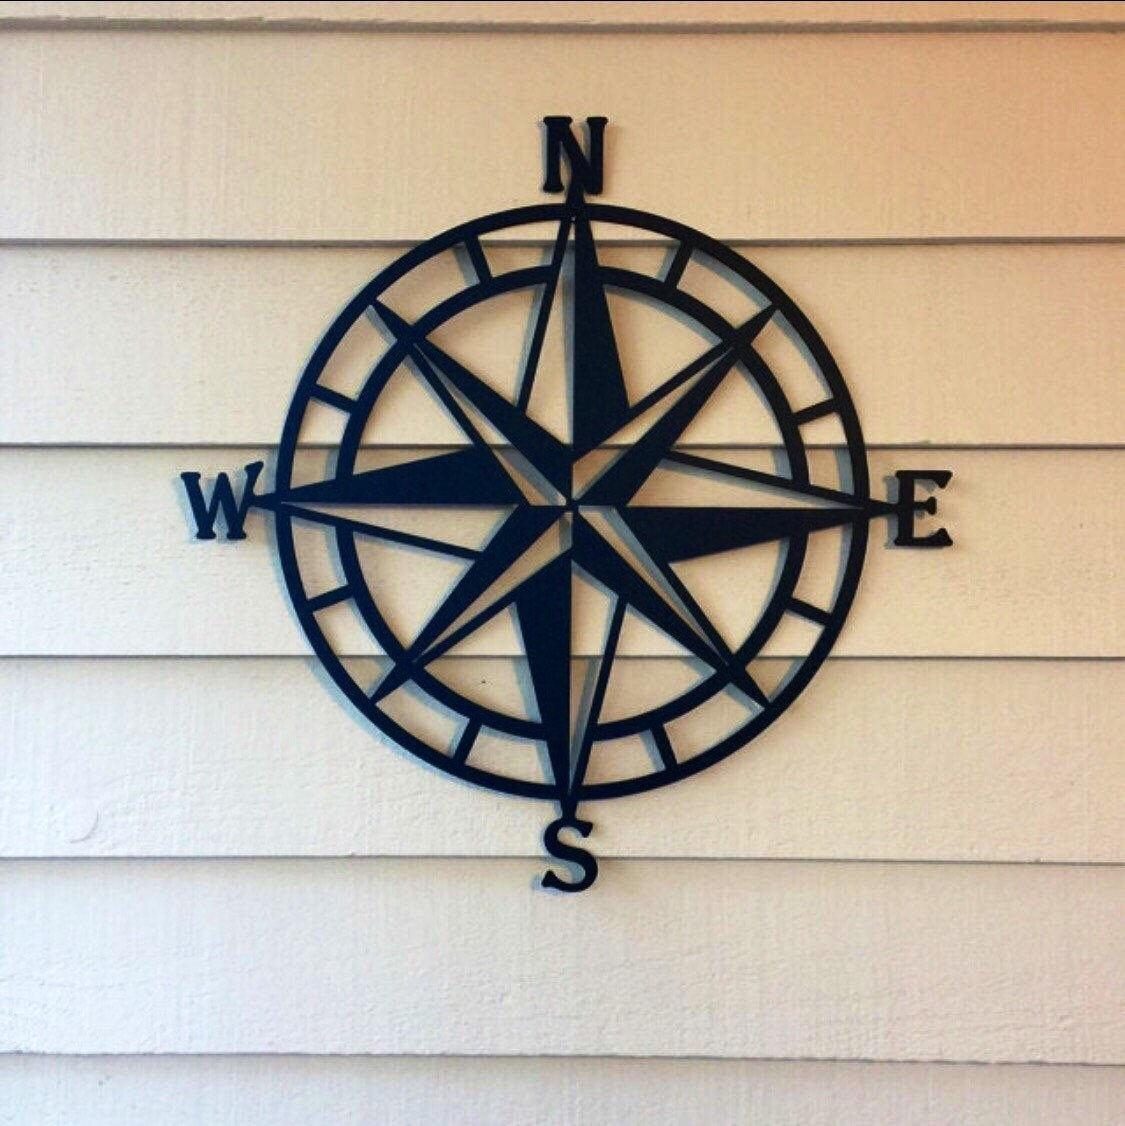 Outdoor Metal Wall Decor | Roselawnlutheran For Outdoor Metal Art For Walls (View 10 of 20)